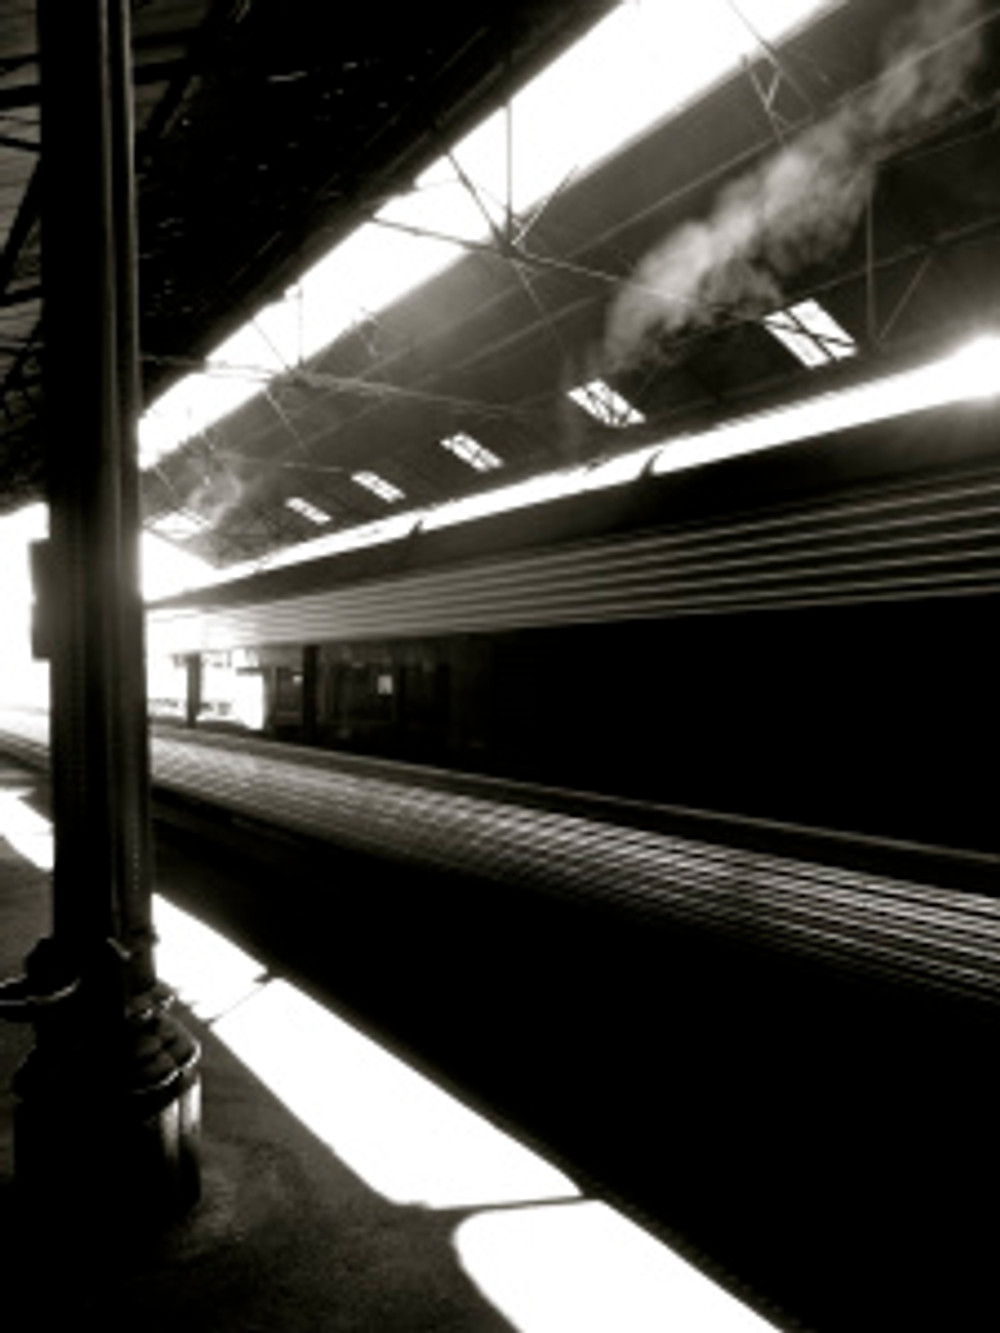 loved the lines...train stations are rad...